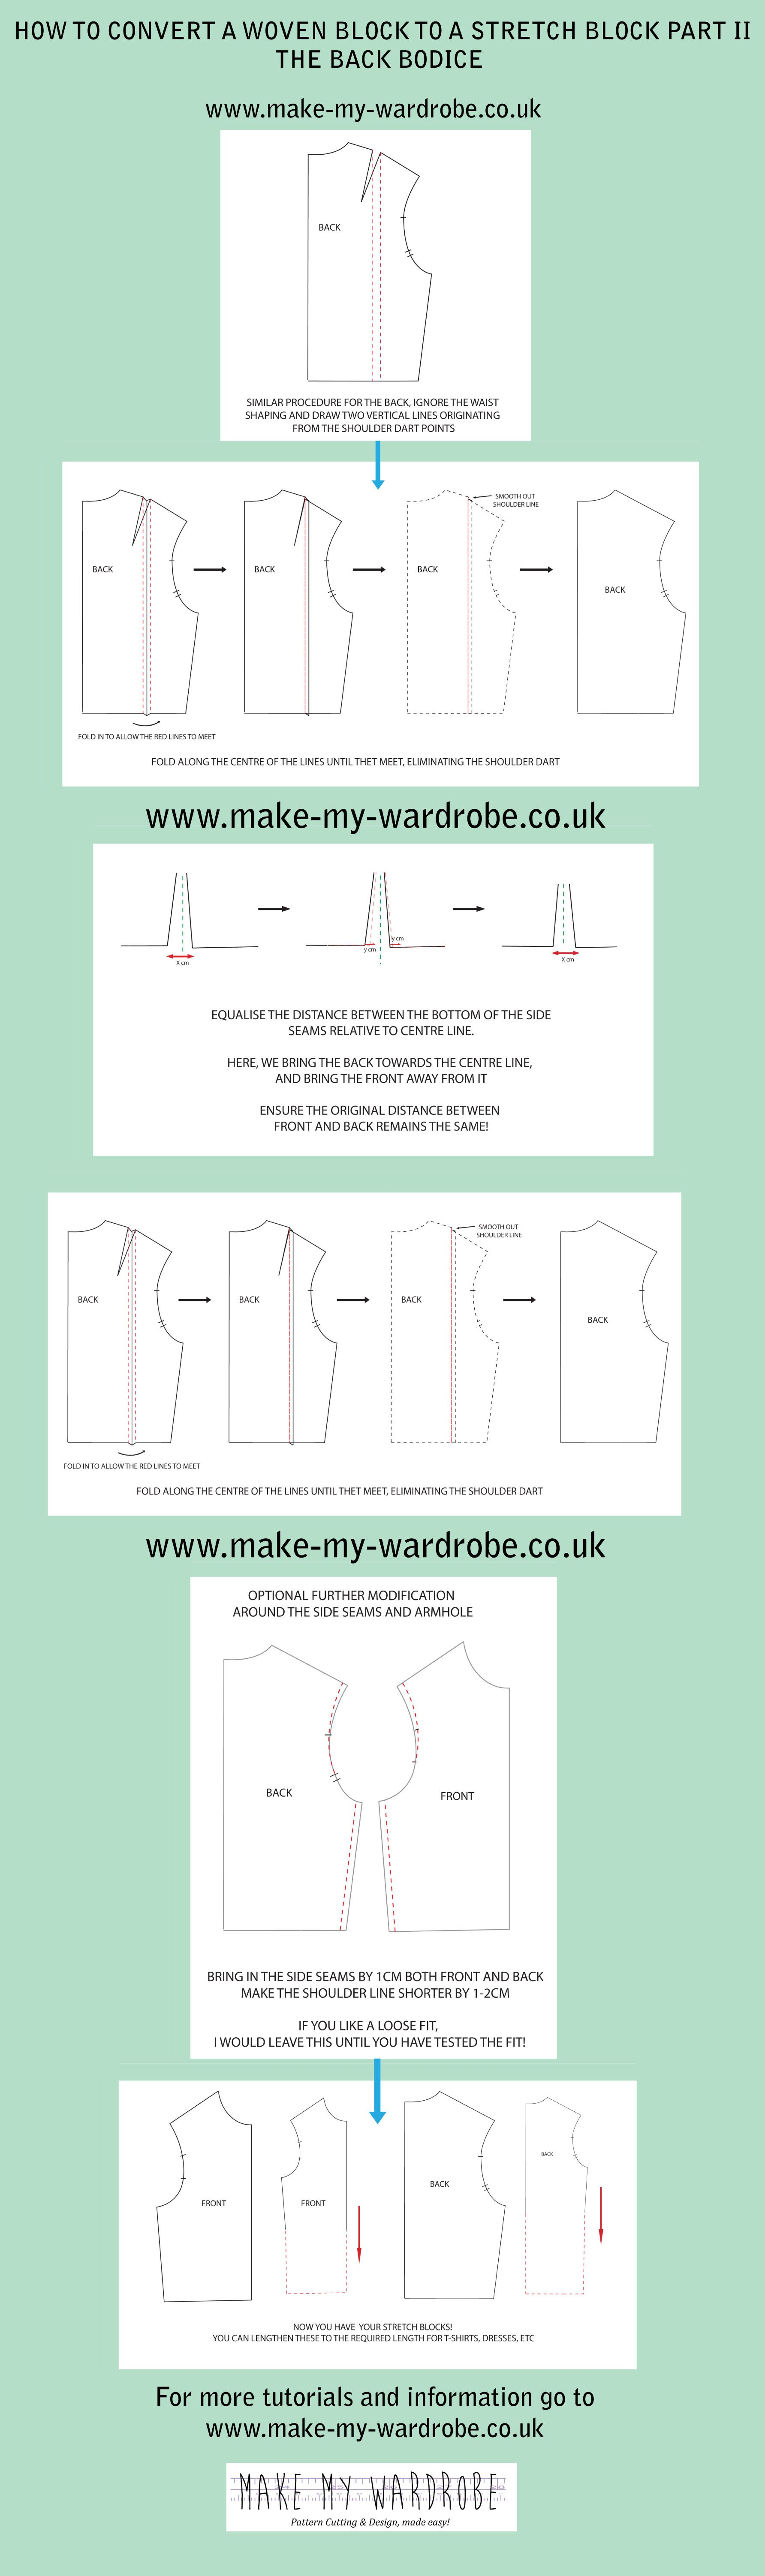 Dart shirt design your own - How To Convert A Woven Pattern Block For Stretch Fabrics The Back Bodice For